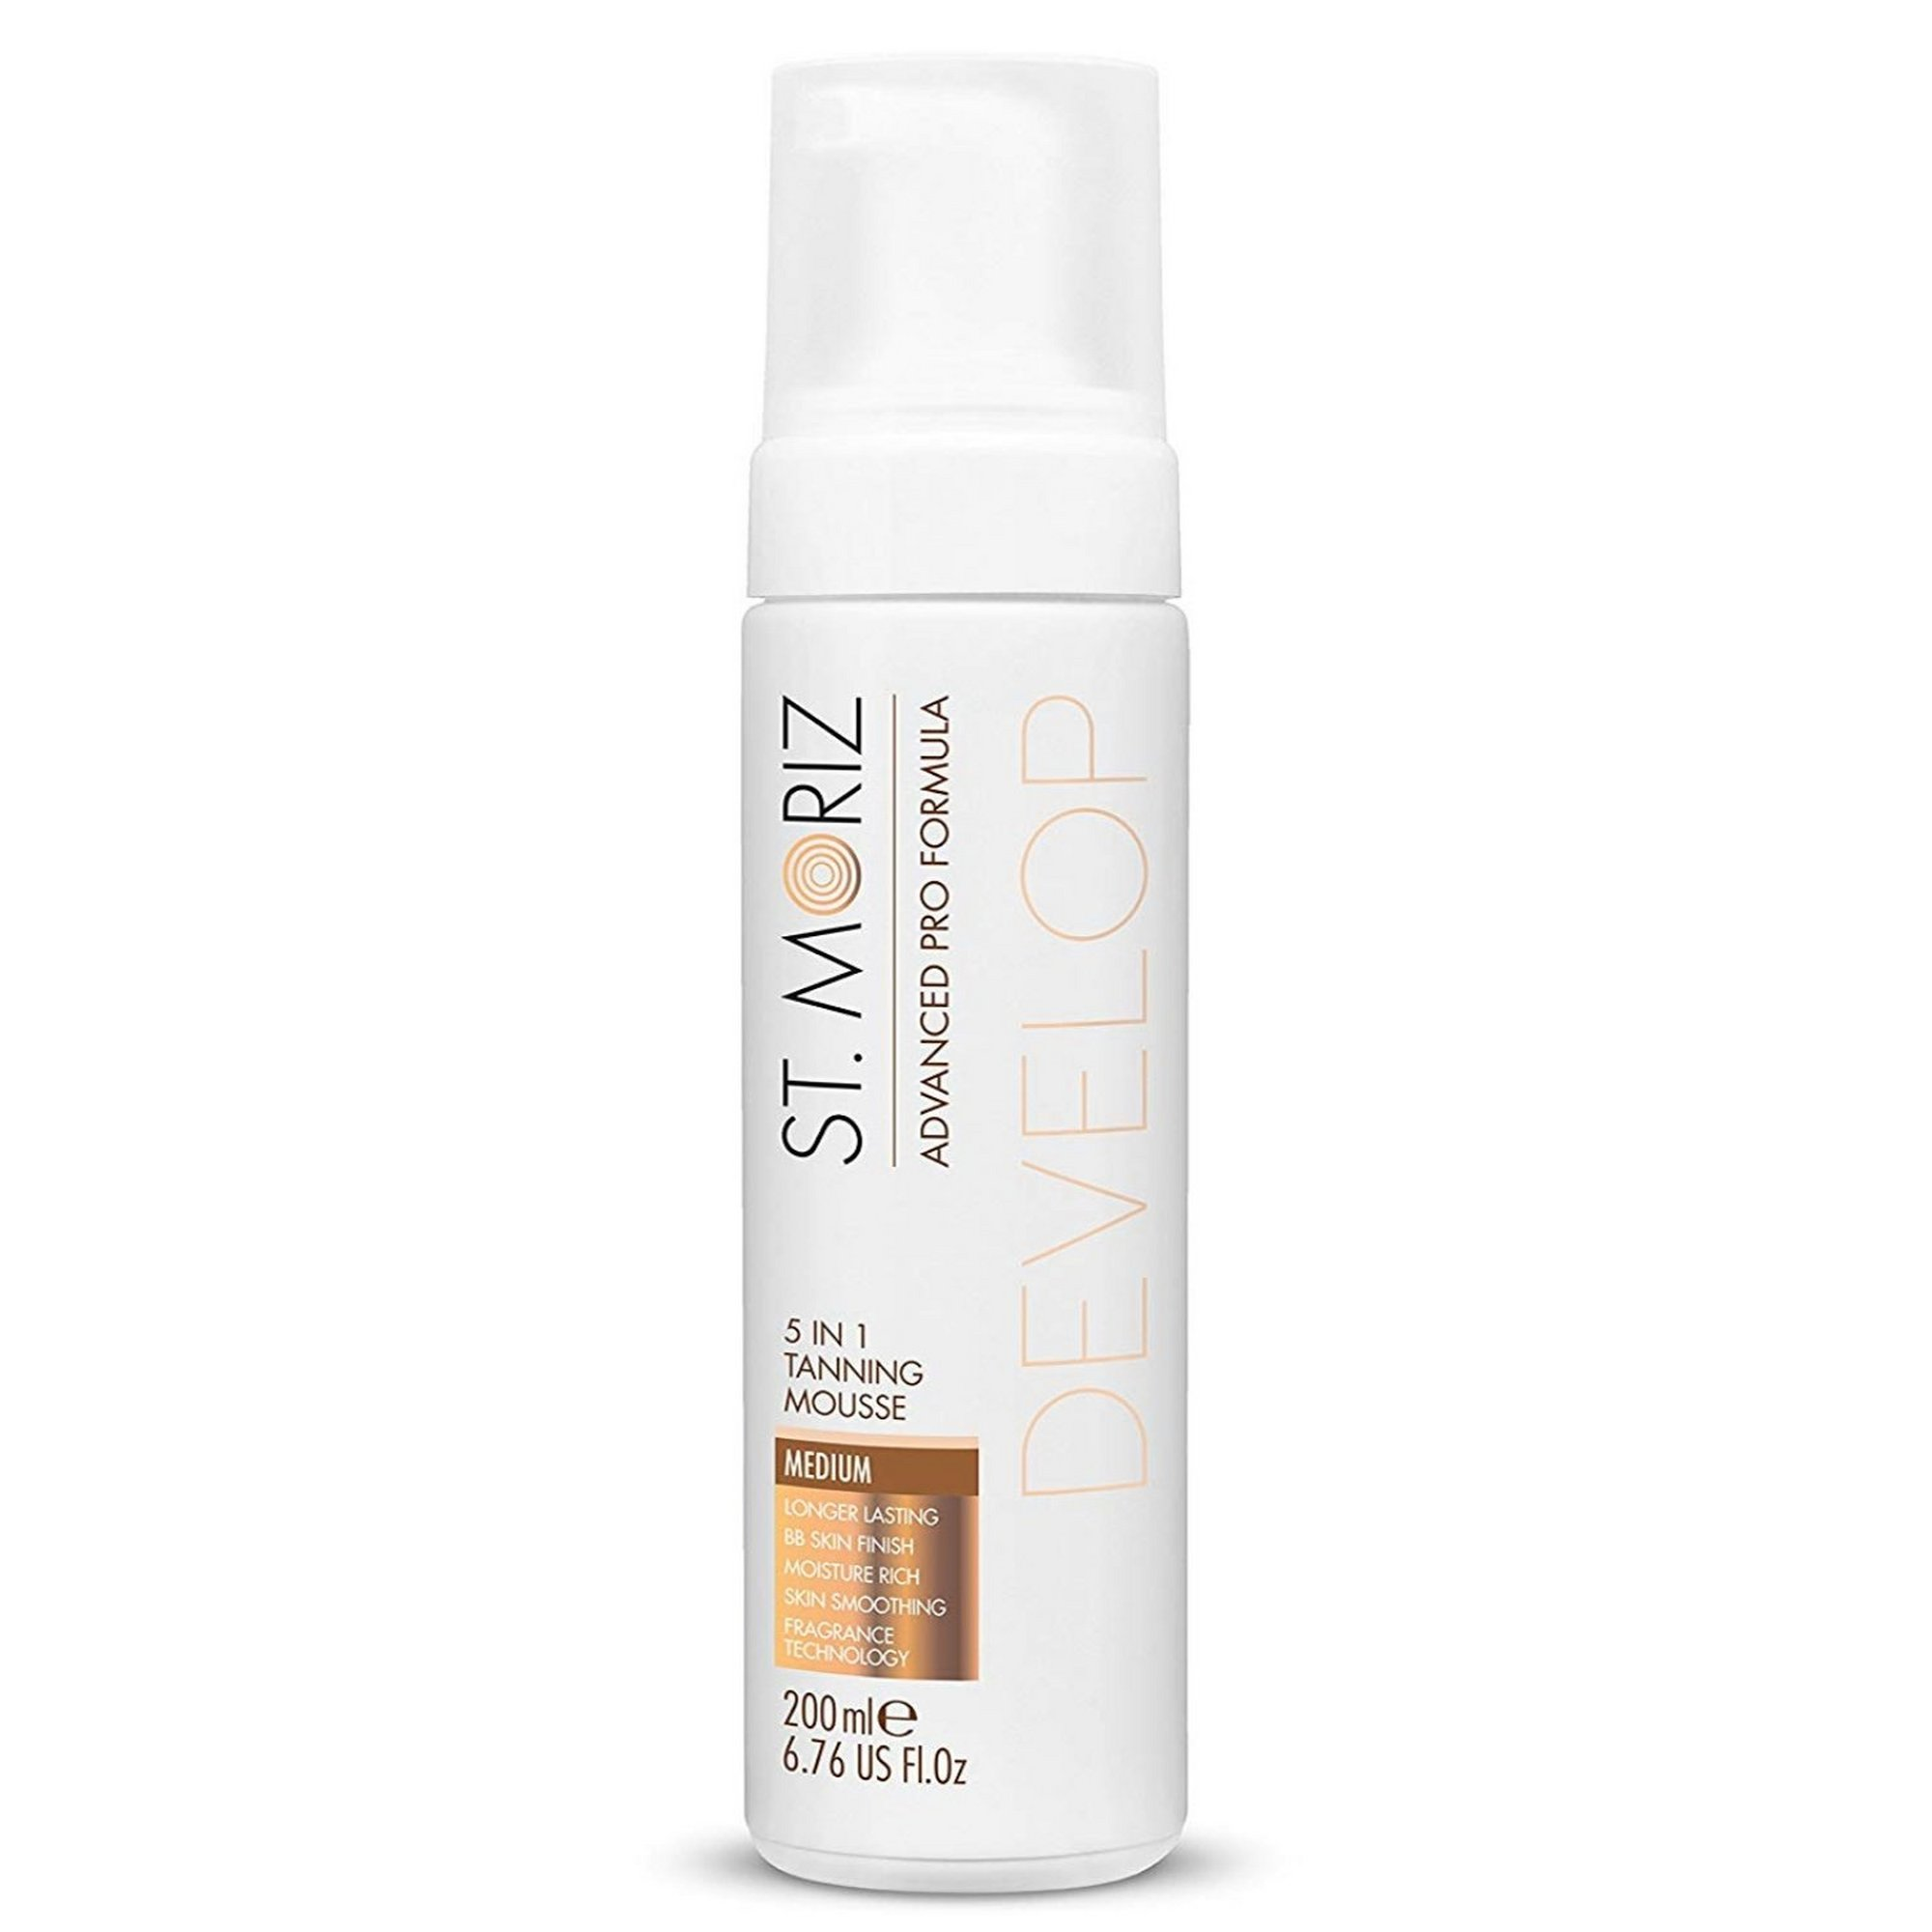 Image of St Moriz Advanced Pro 5-in-1 Tanning Mousse